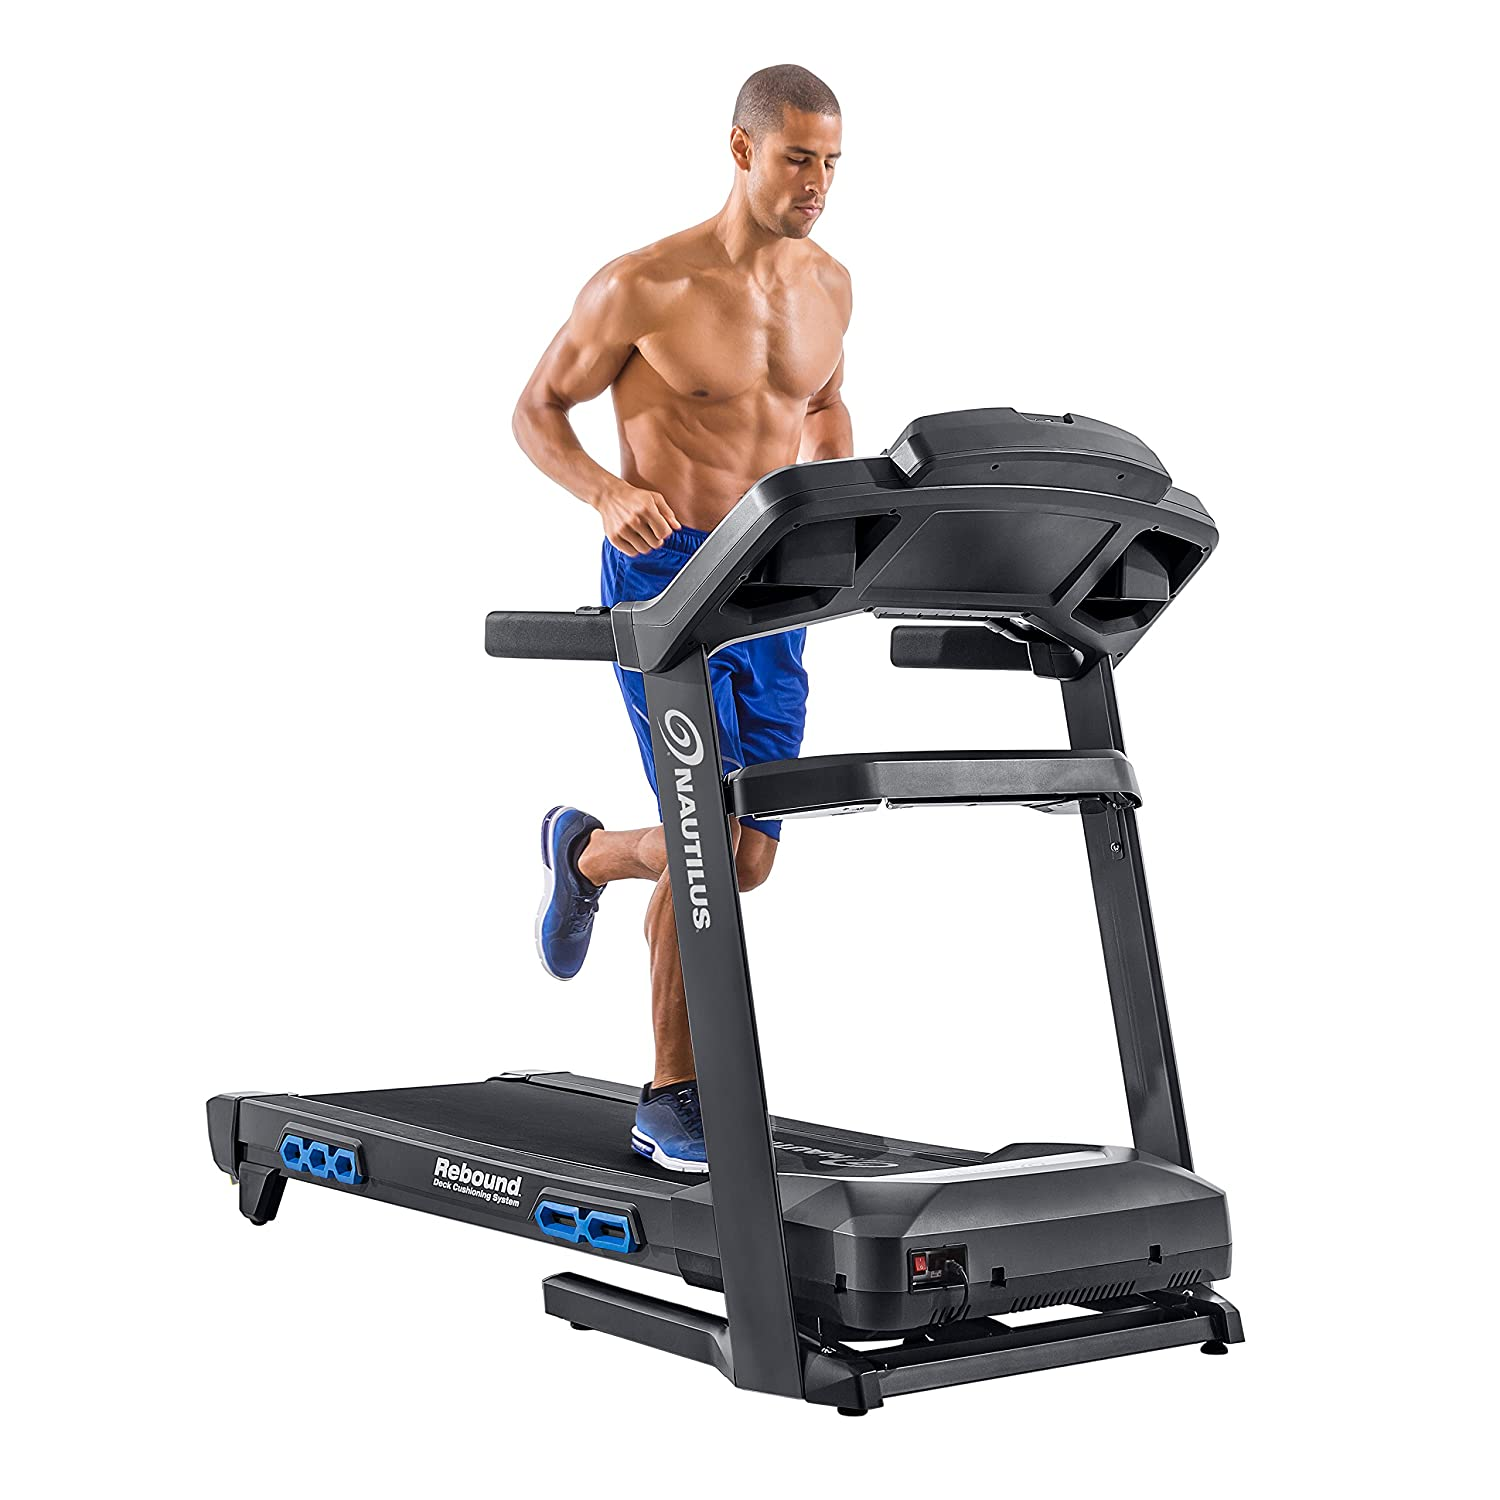 Nautilus T618 Treadmill – The Robust Treadmill